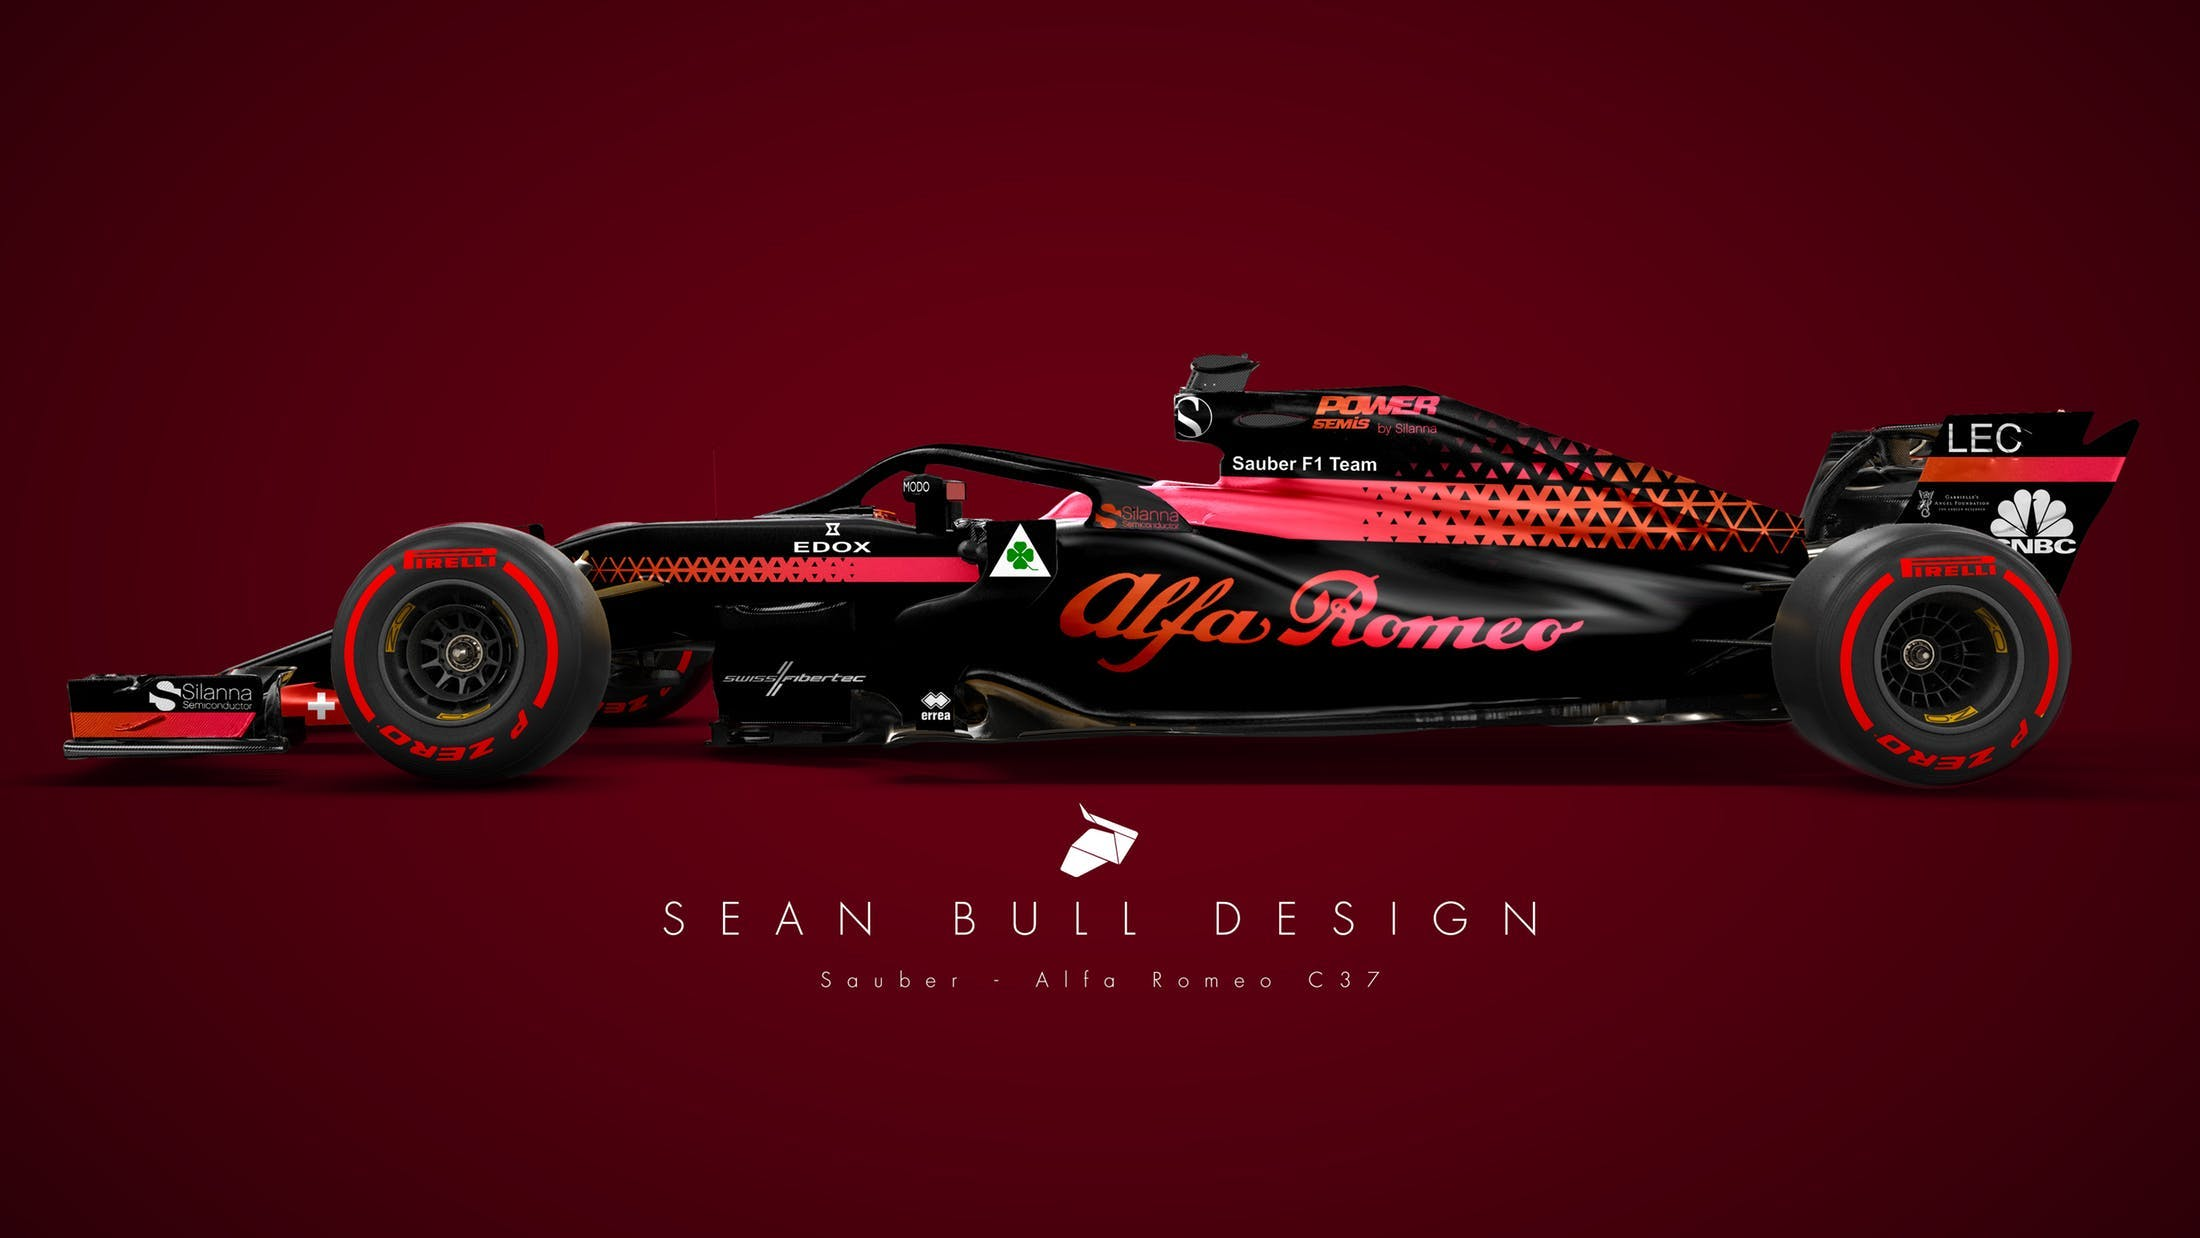 And now, for the best looking and slowest F1 car of the 2018 Season